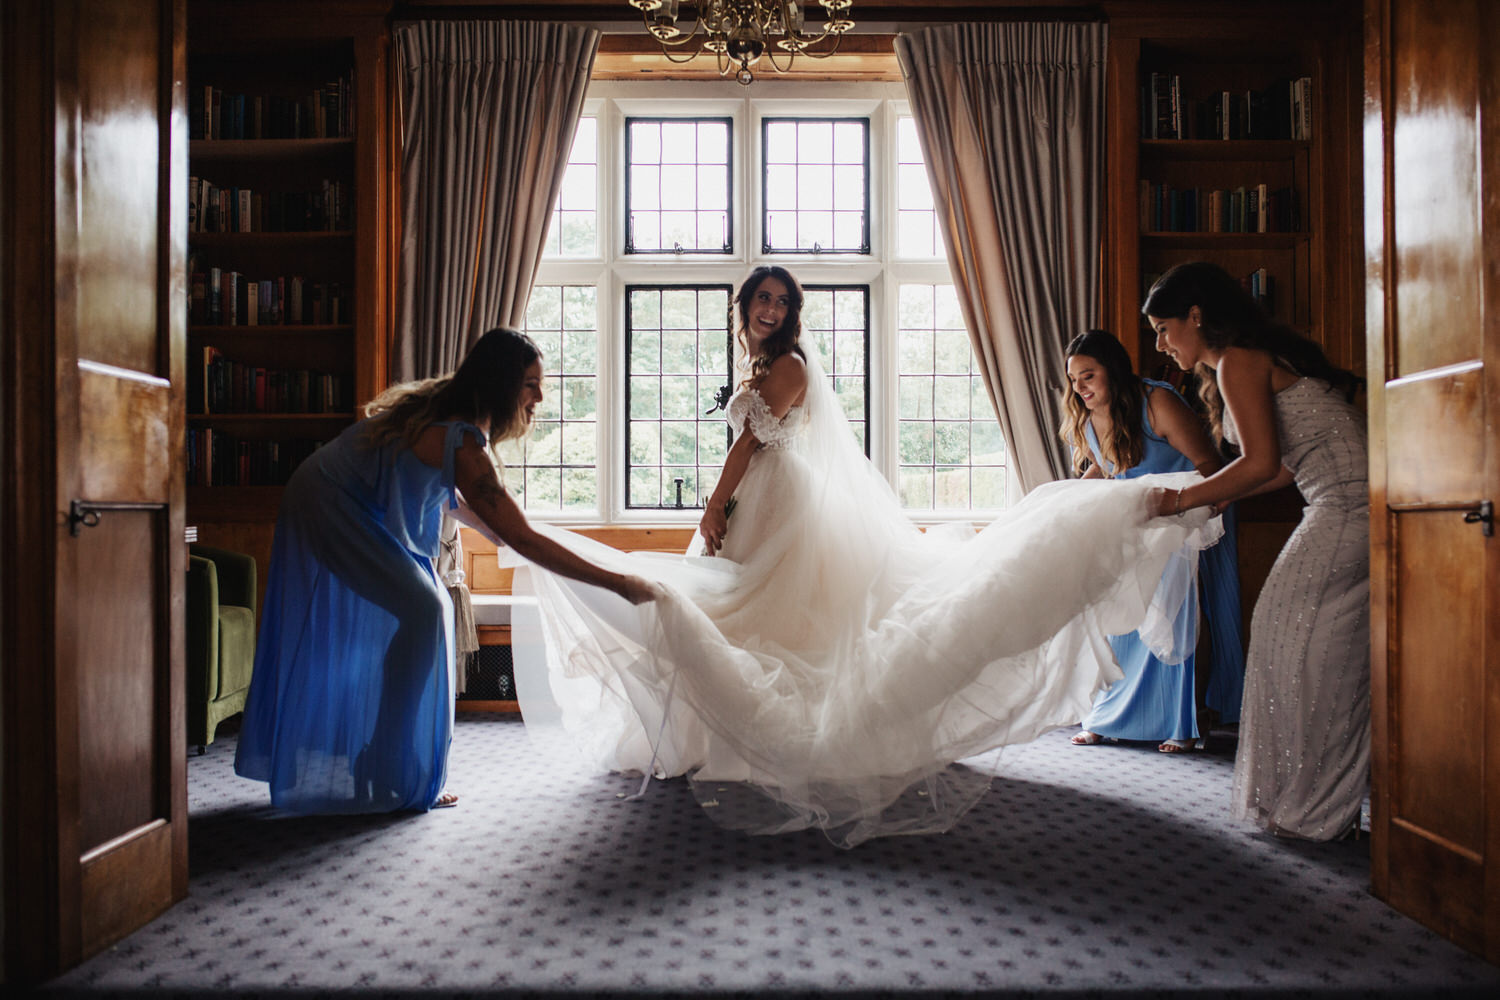 the happy bridesmaids help the smiling bride with her wedding dress